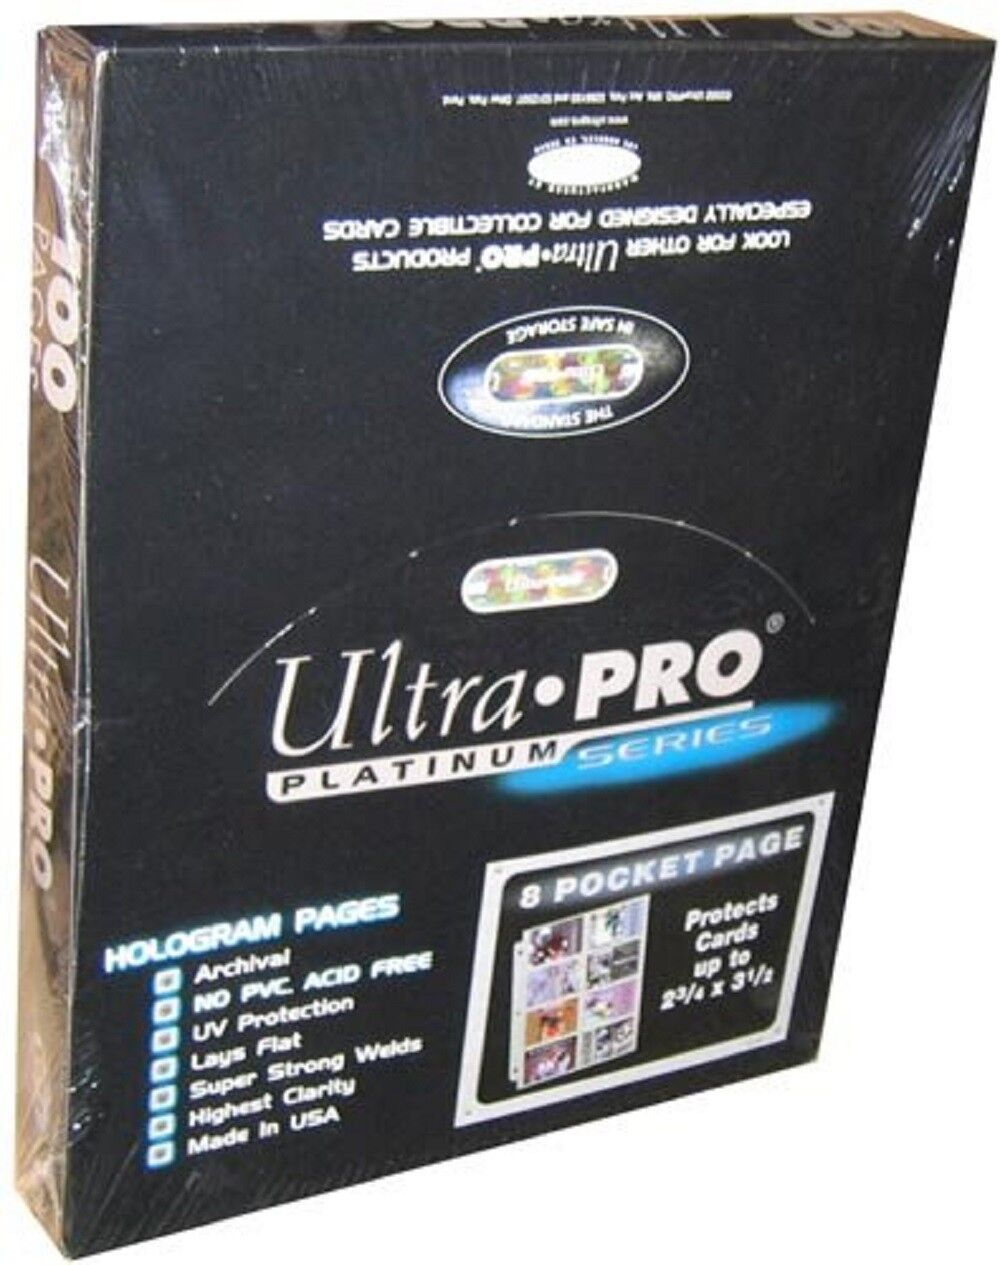 200 ULTRA PRO PLATINUM 8-POCKET 2 3//4 x 3 7//8 Pages Sheets Protectors Brand New